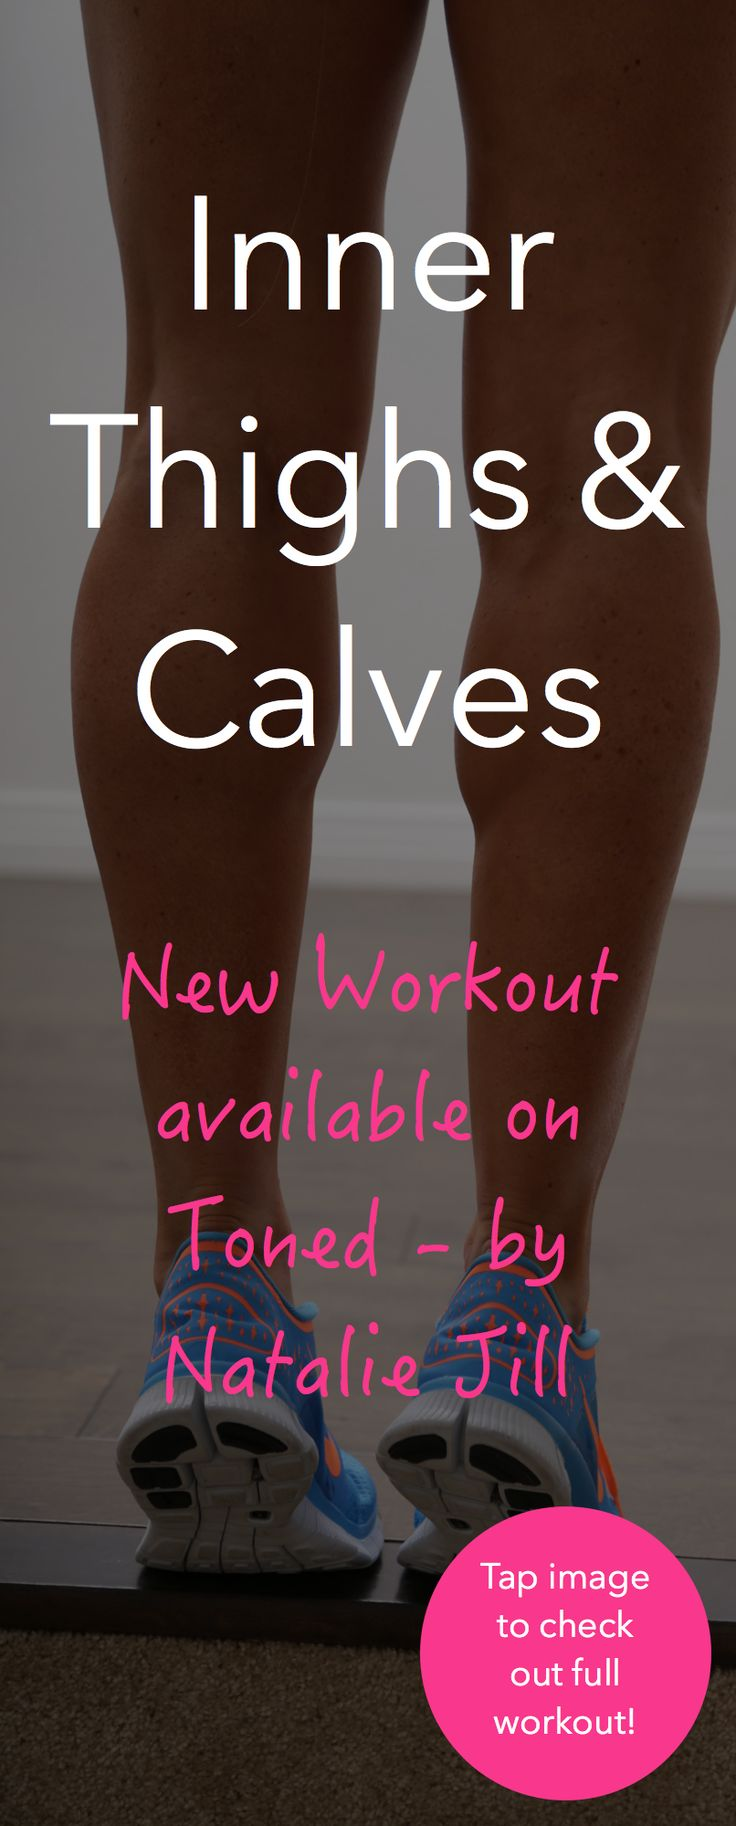 "New Inner thigh & calves workout is up on my ""TONED by Natalie Jill"